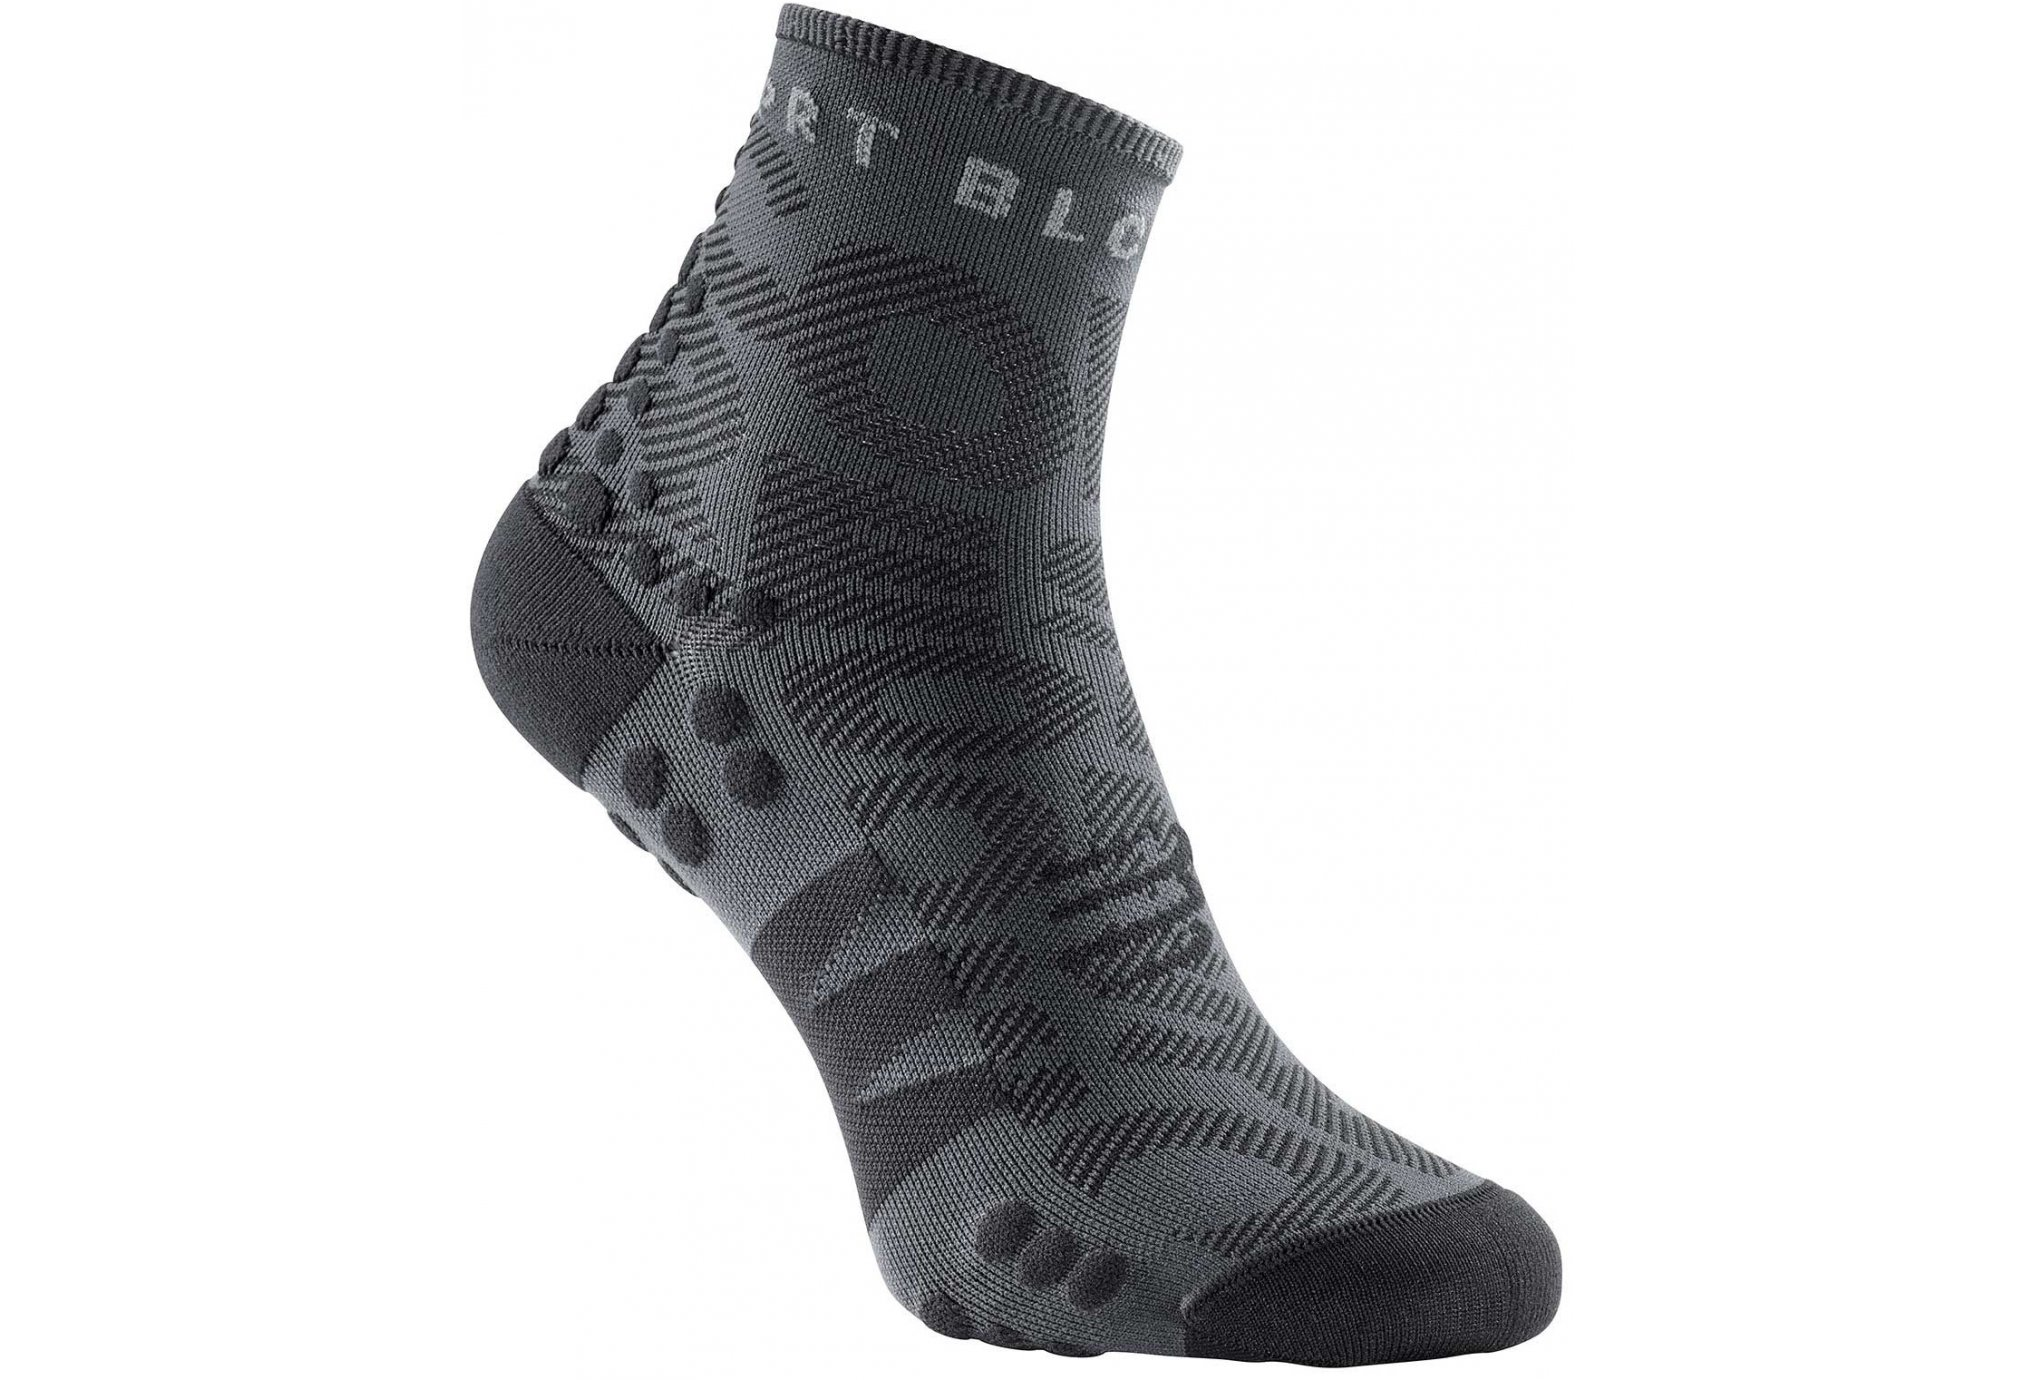 Compressport Pro Racing V 3.0 Run High Black Edition 2020 Chaussettes